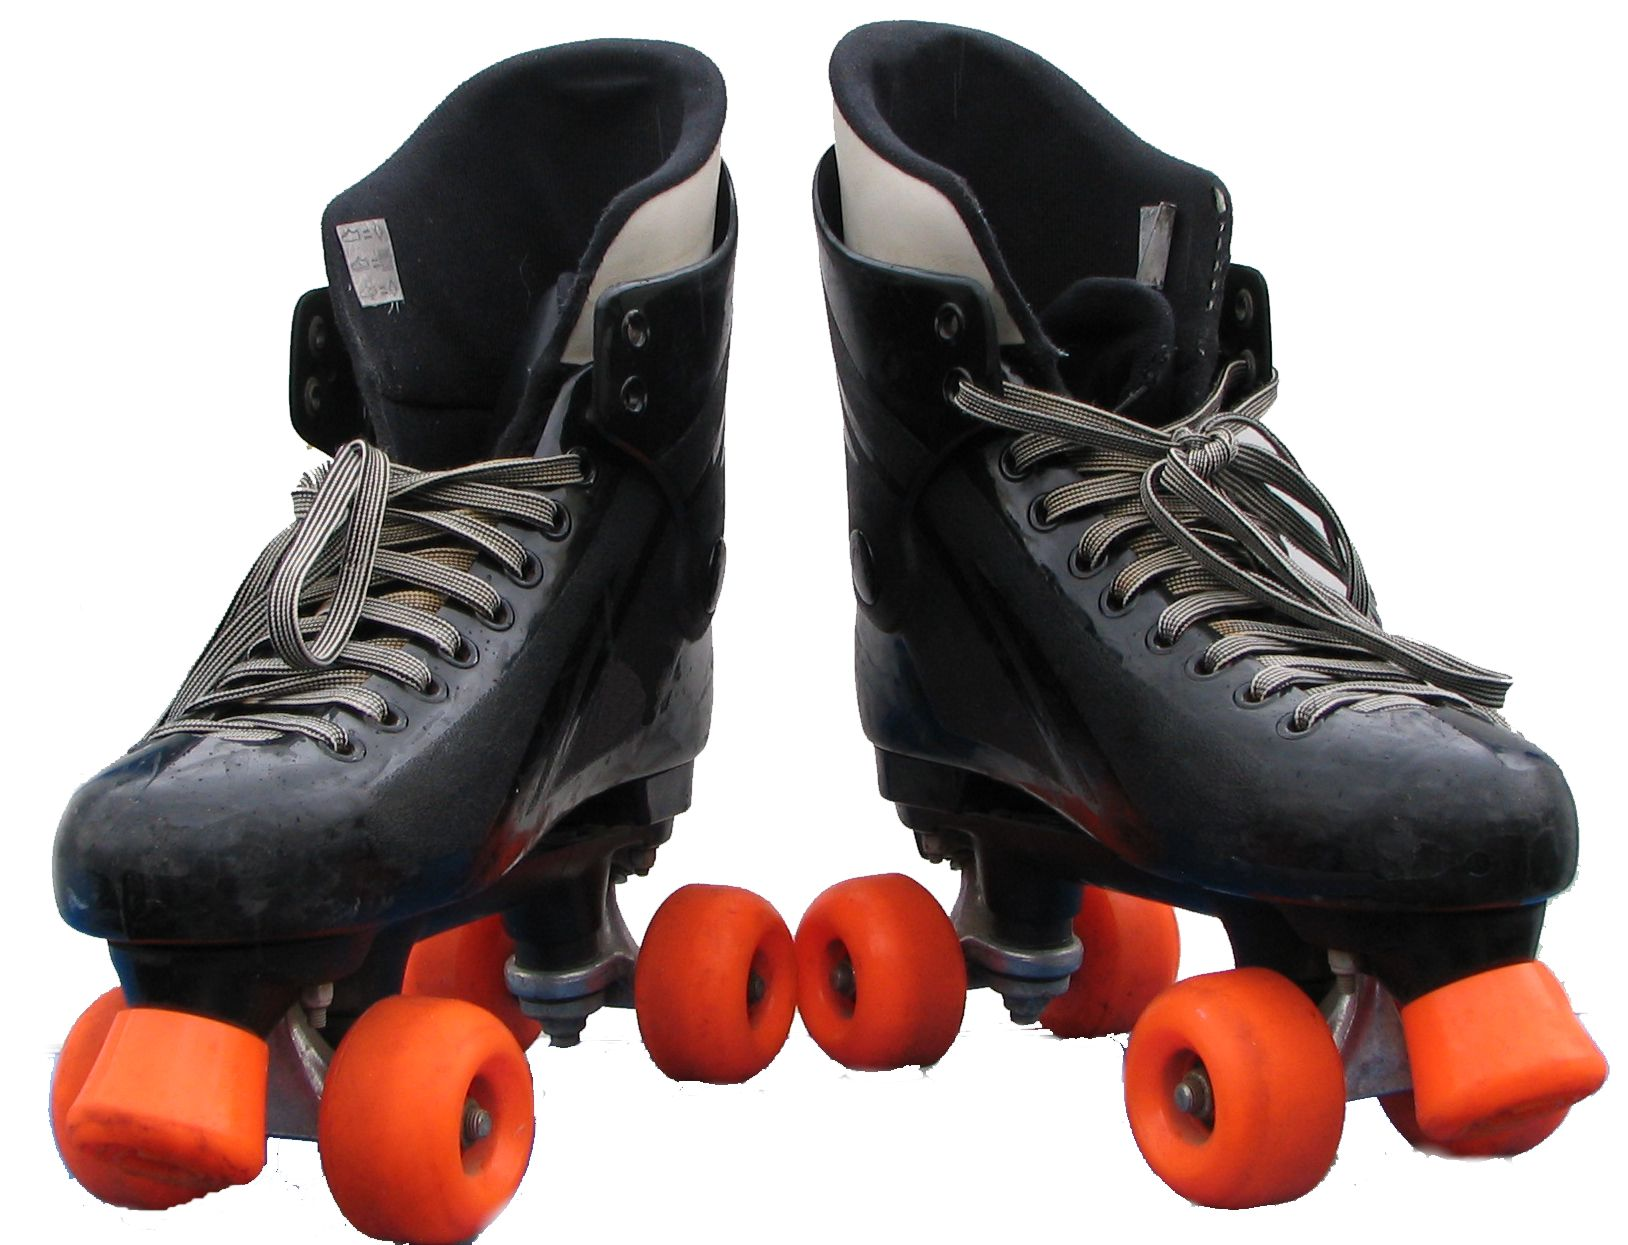 Roller Skating Rinks Hire